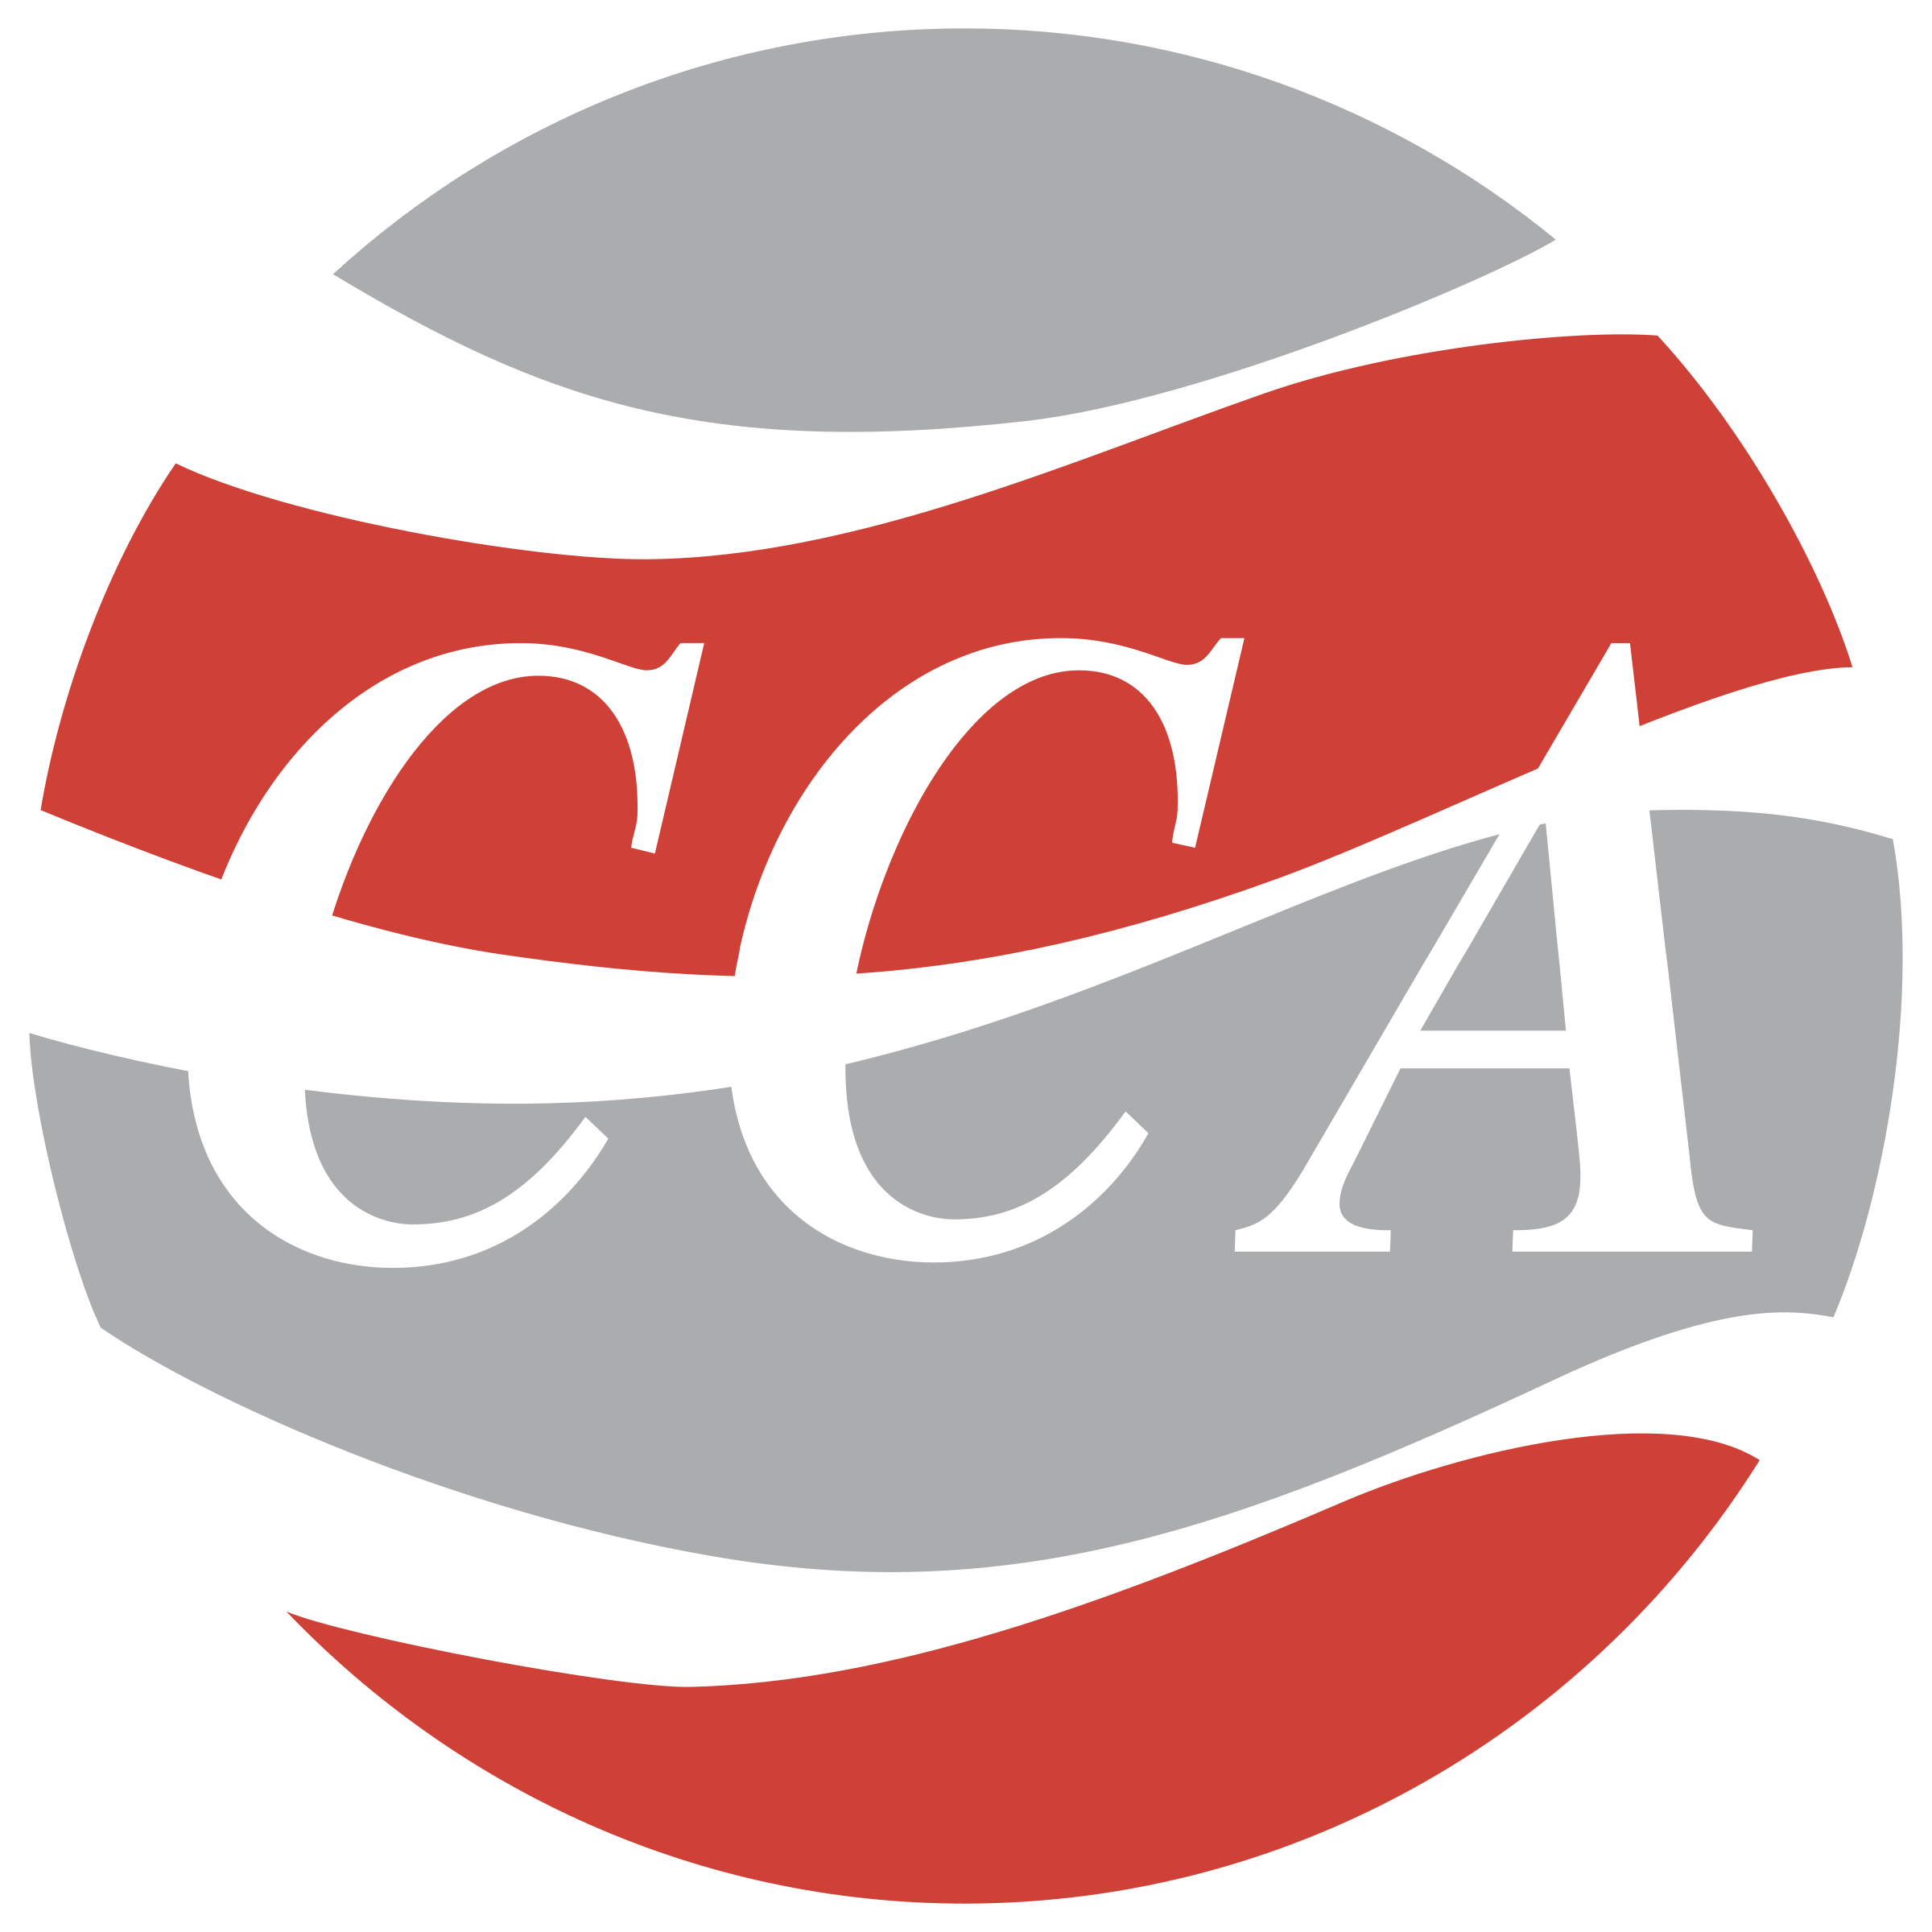 CCA Logo PNG Transparent & SVG Vector.